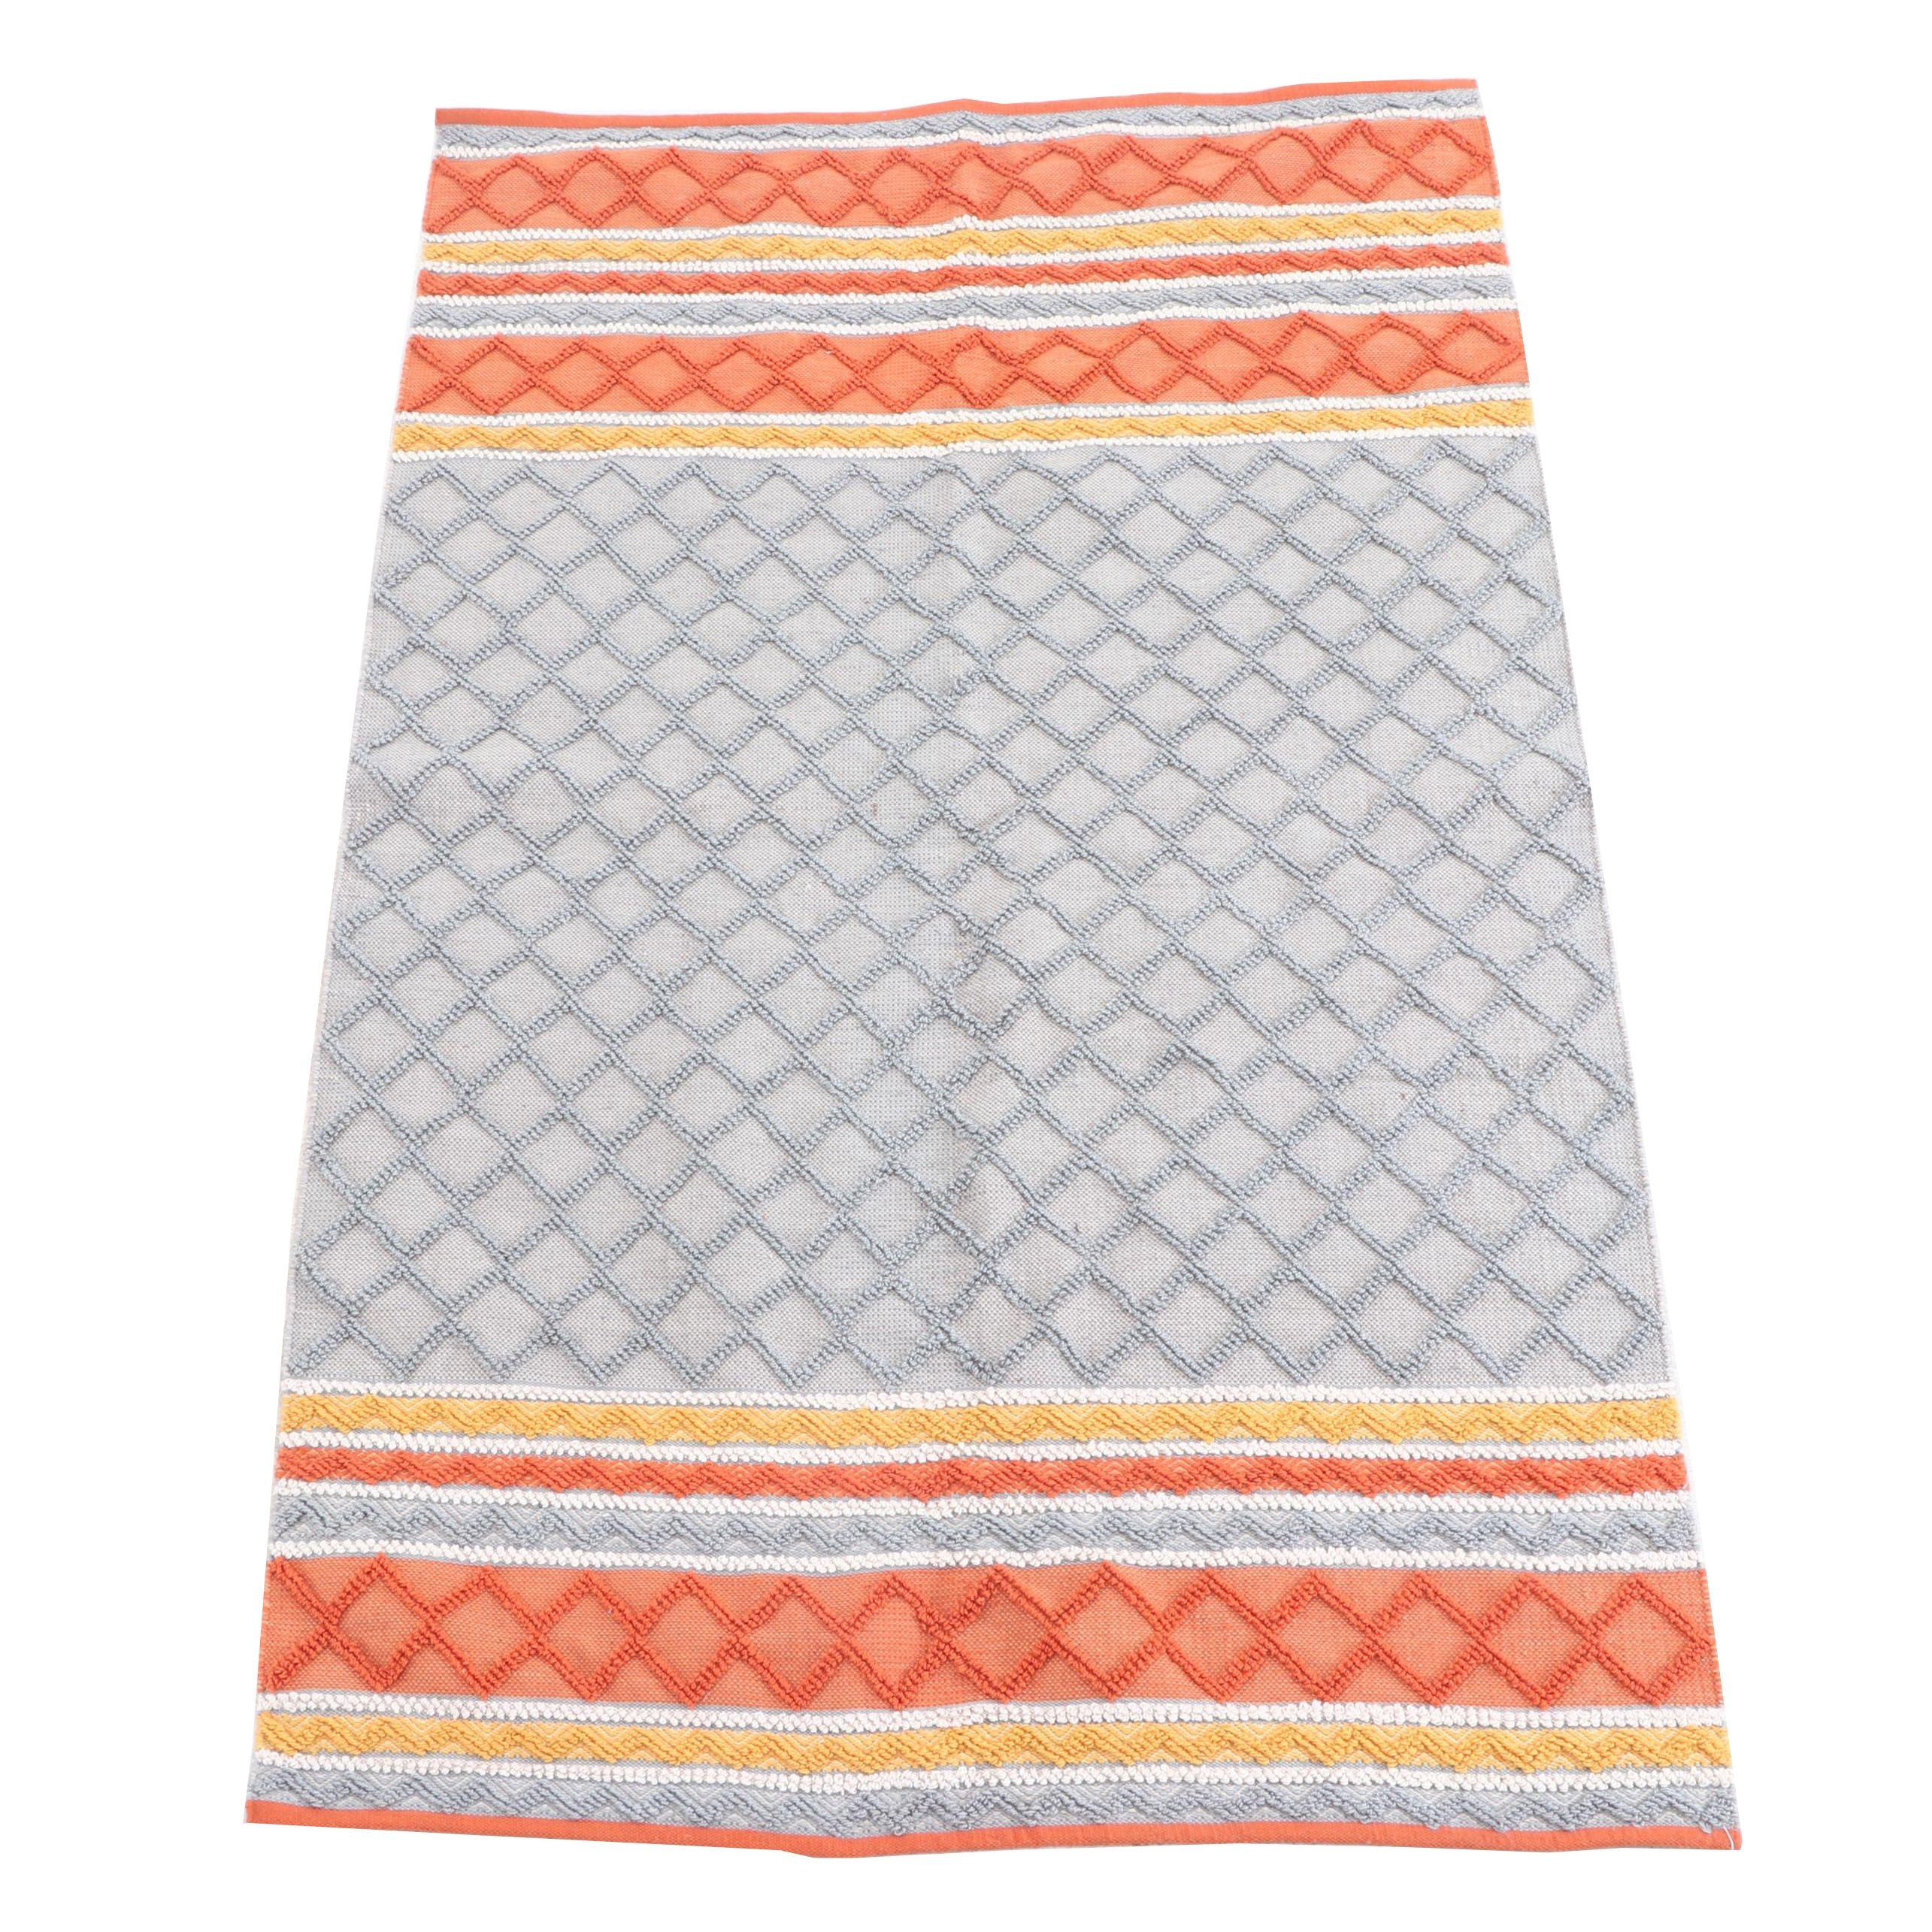 """Handwoven and Hooked Indian The Rug Market """"Dominique Orange"""" Area Rug"""